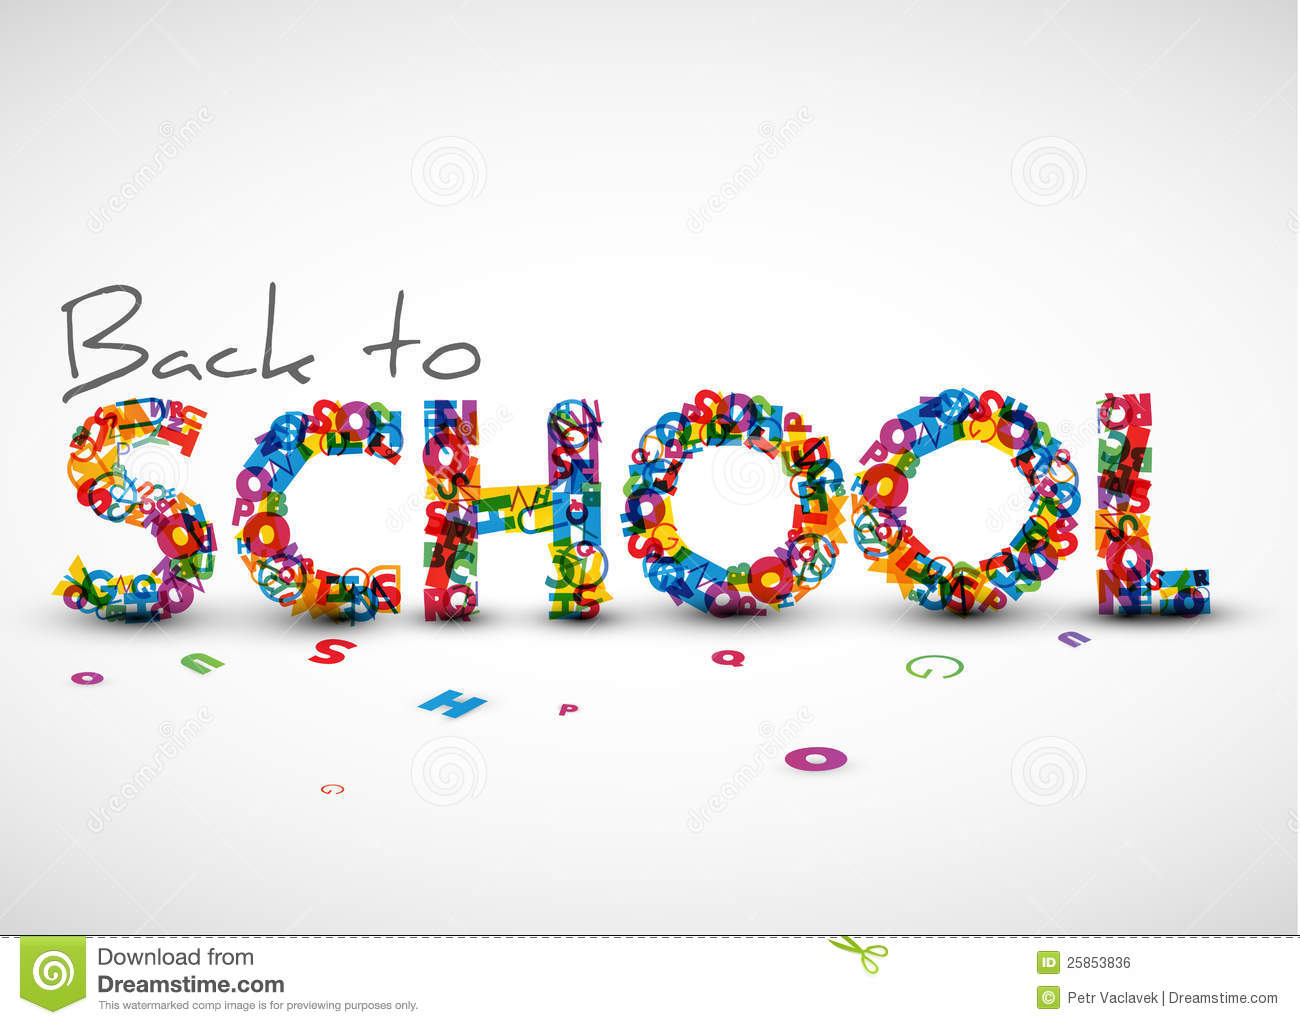 back to school vector - photo #7